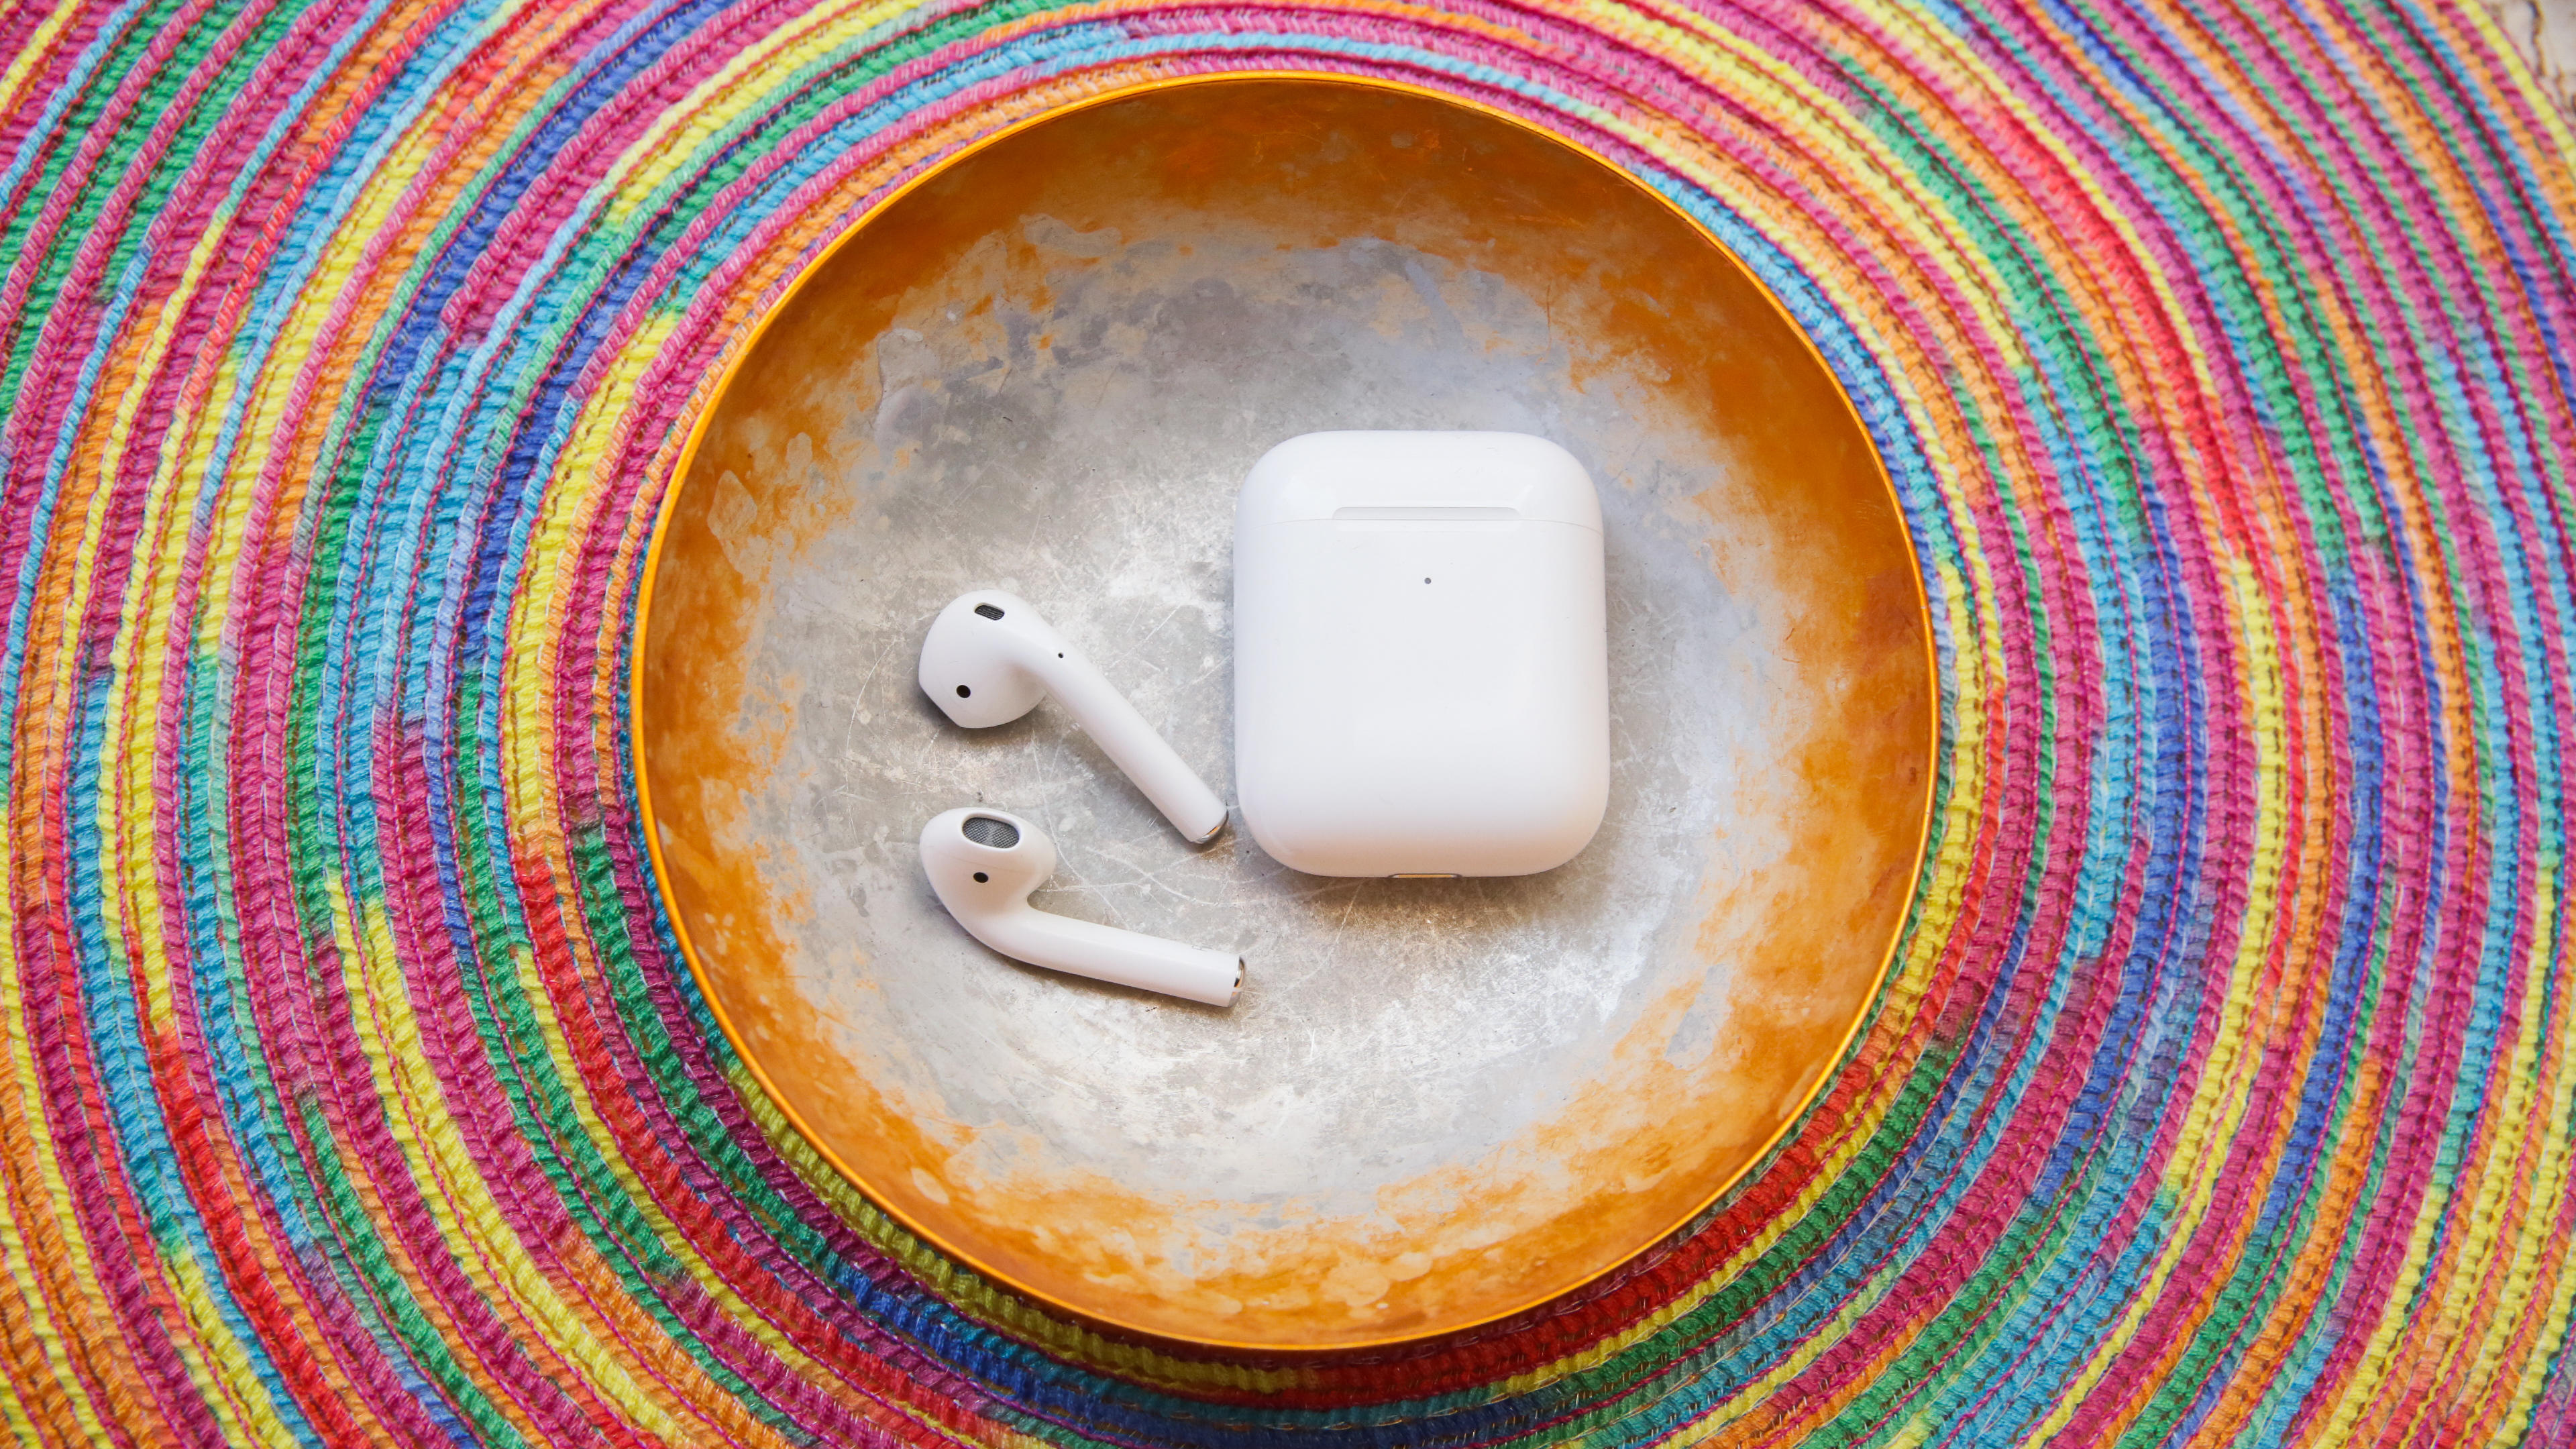 05-airpods-2nd-generation